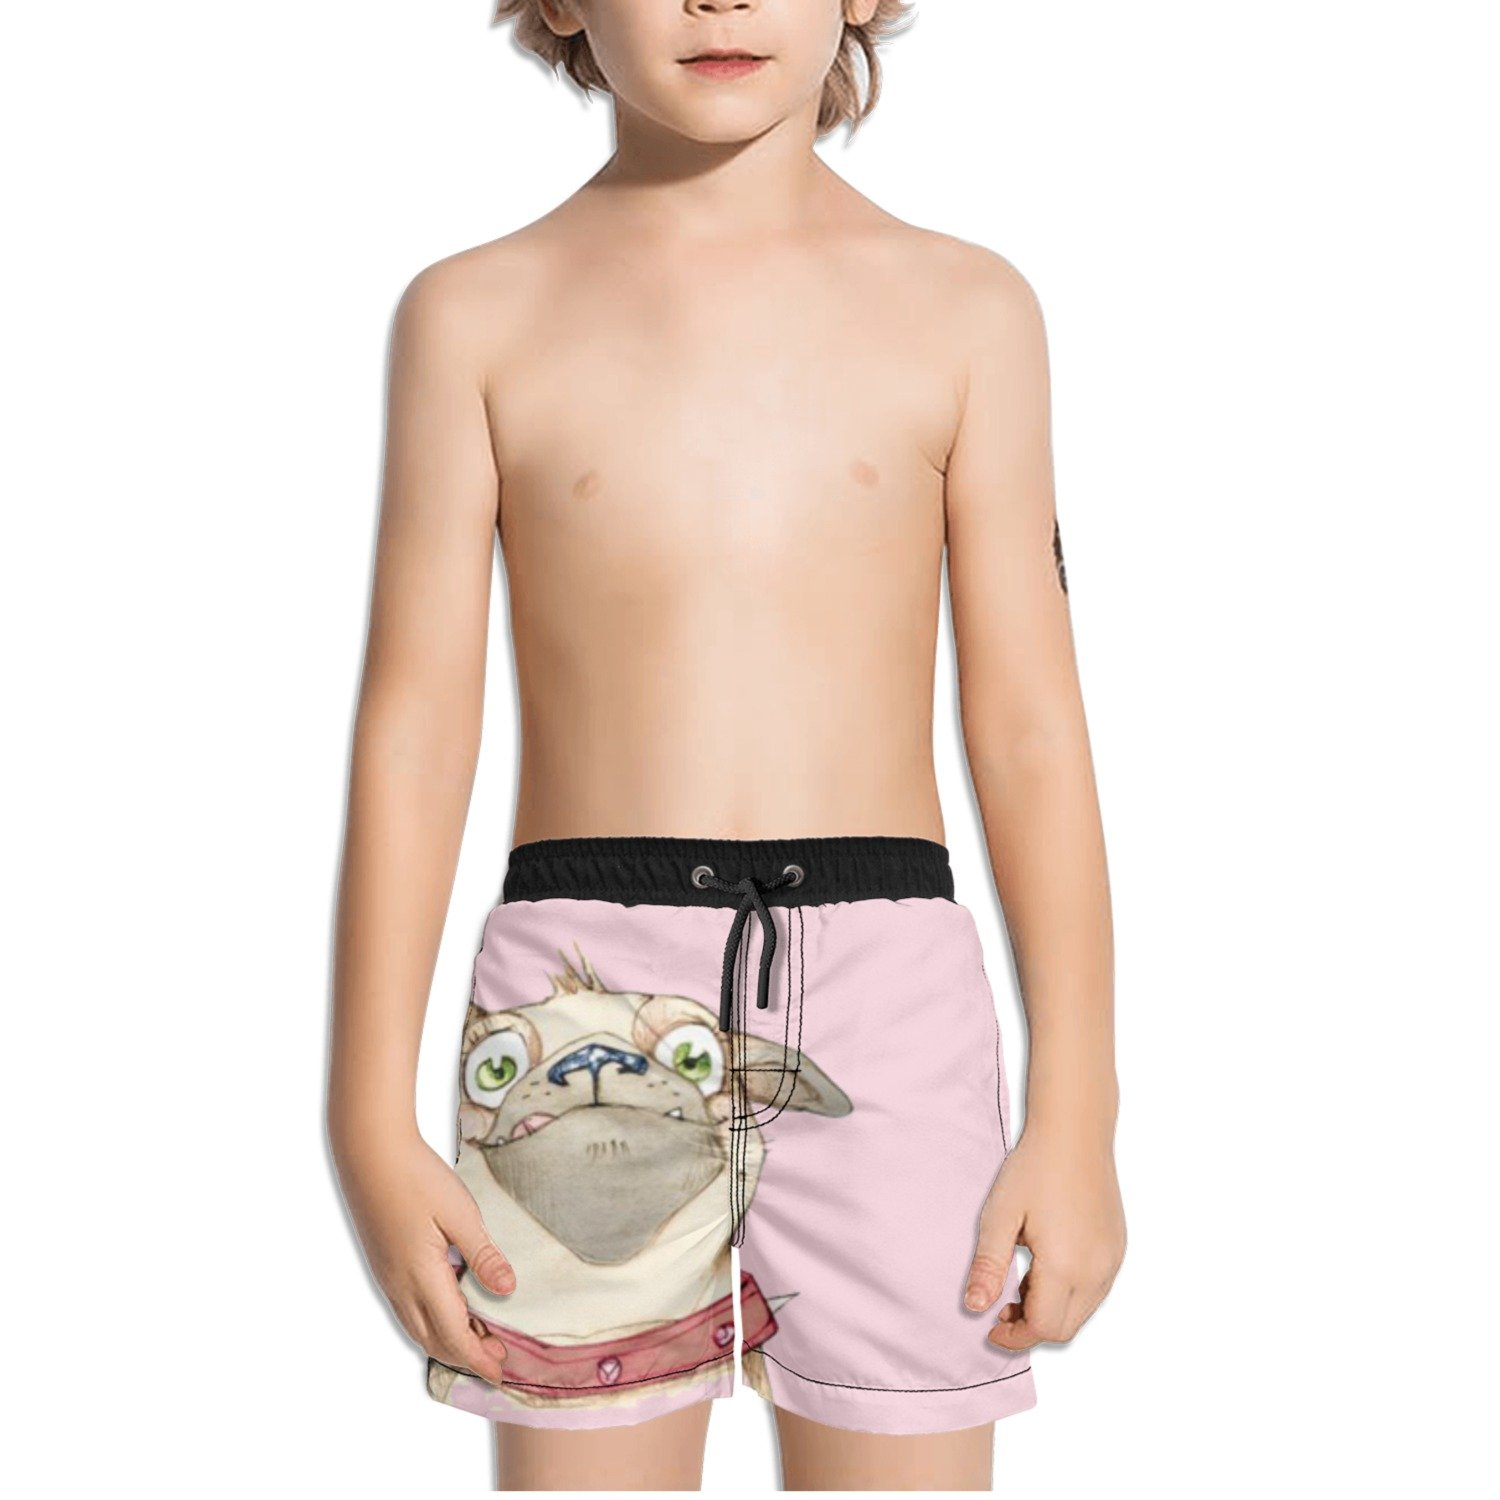 Juliuse Marthar Pug Gifts Pink Swim Trunks Quick Dry Beach Board Shorts for Boys